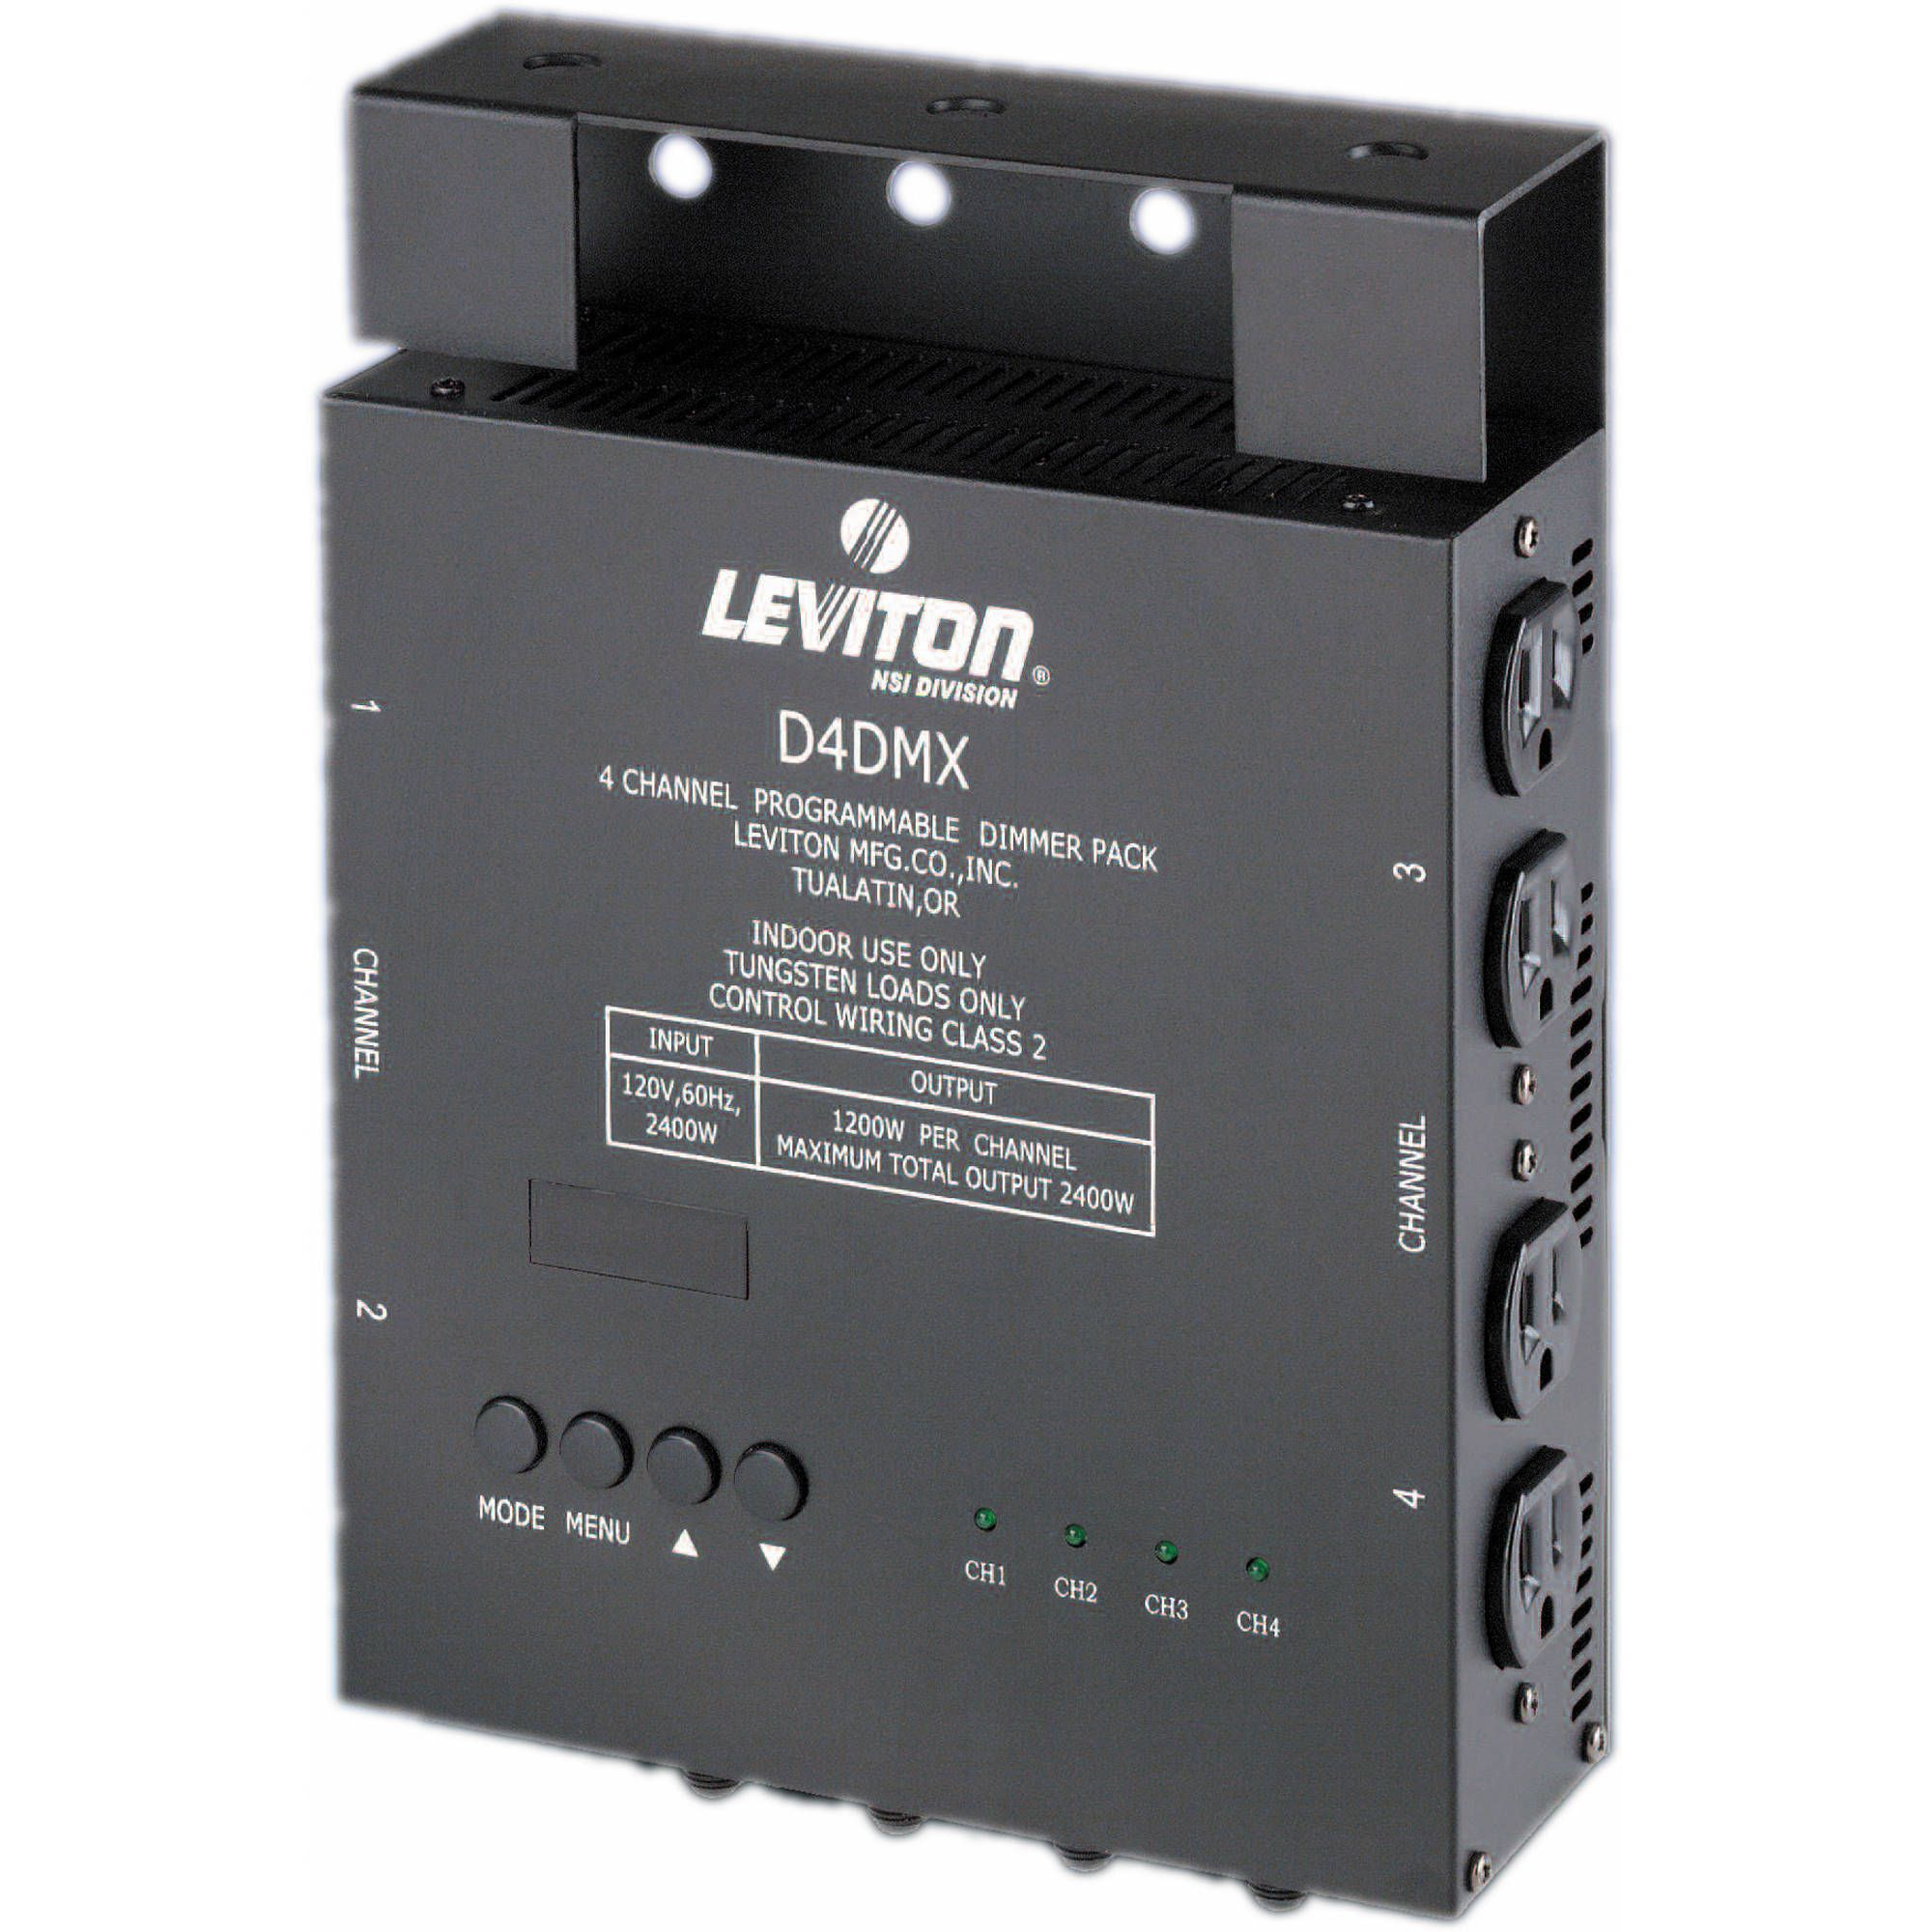 leviton 4 dmx - Google Search | LED\'s we use on the production ...